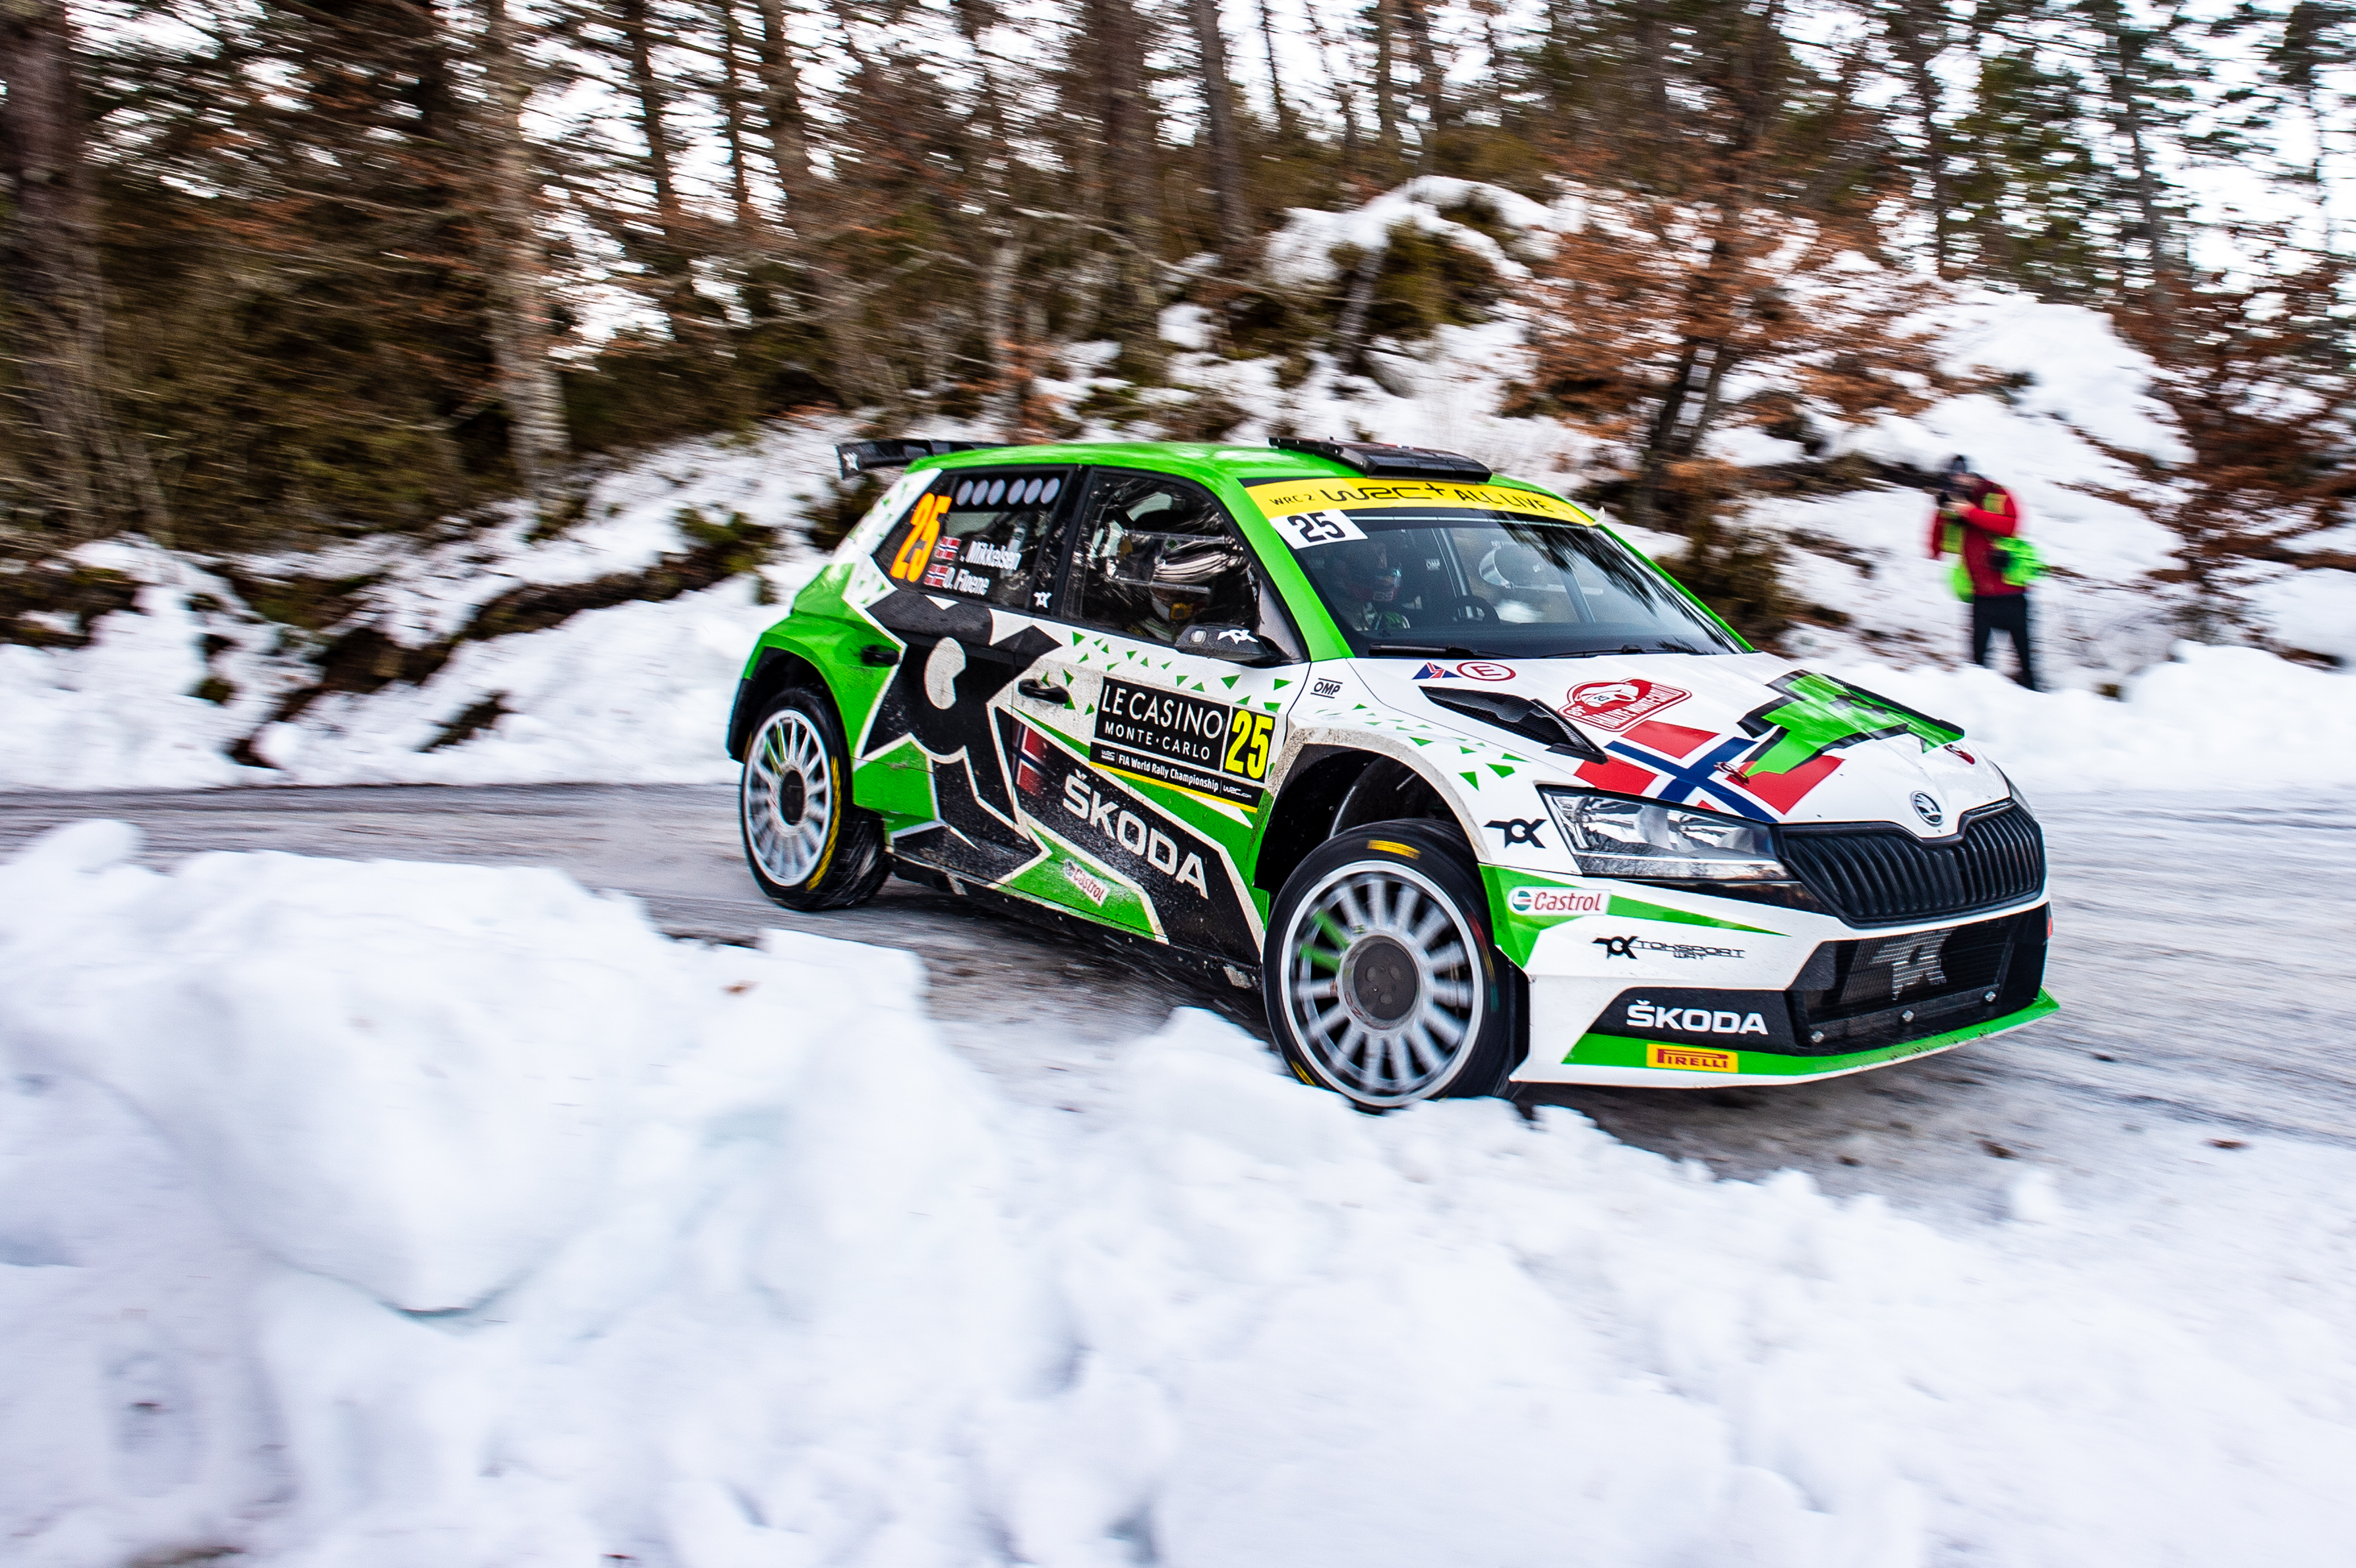 Arctic Rally Finland: WRC2 leader Mikkelsen faces tough competition in his SKODA FABIA Rally2 evo - Image 2